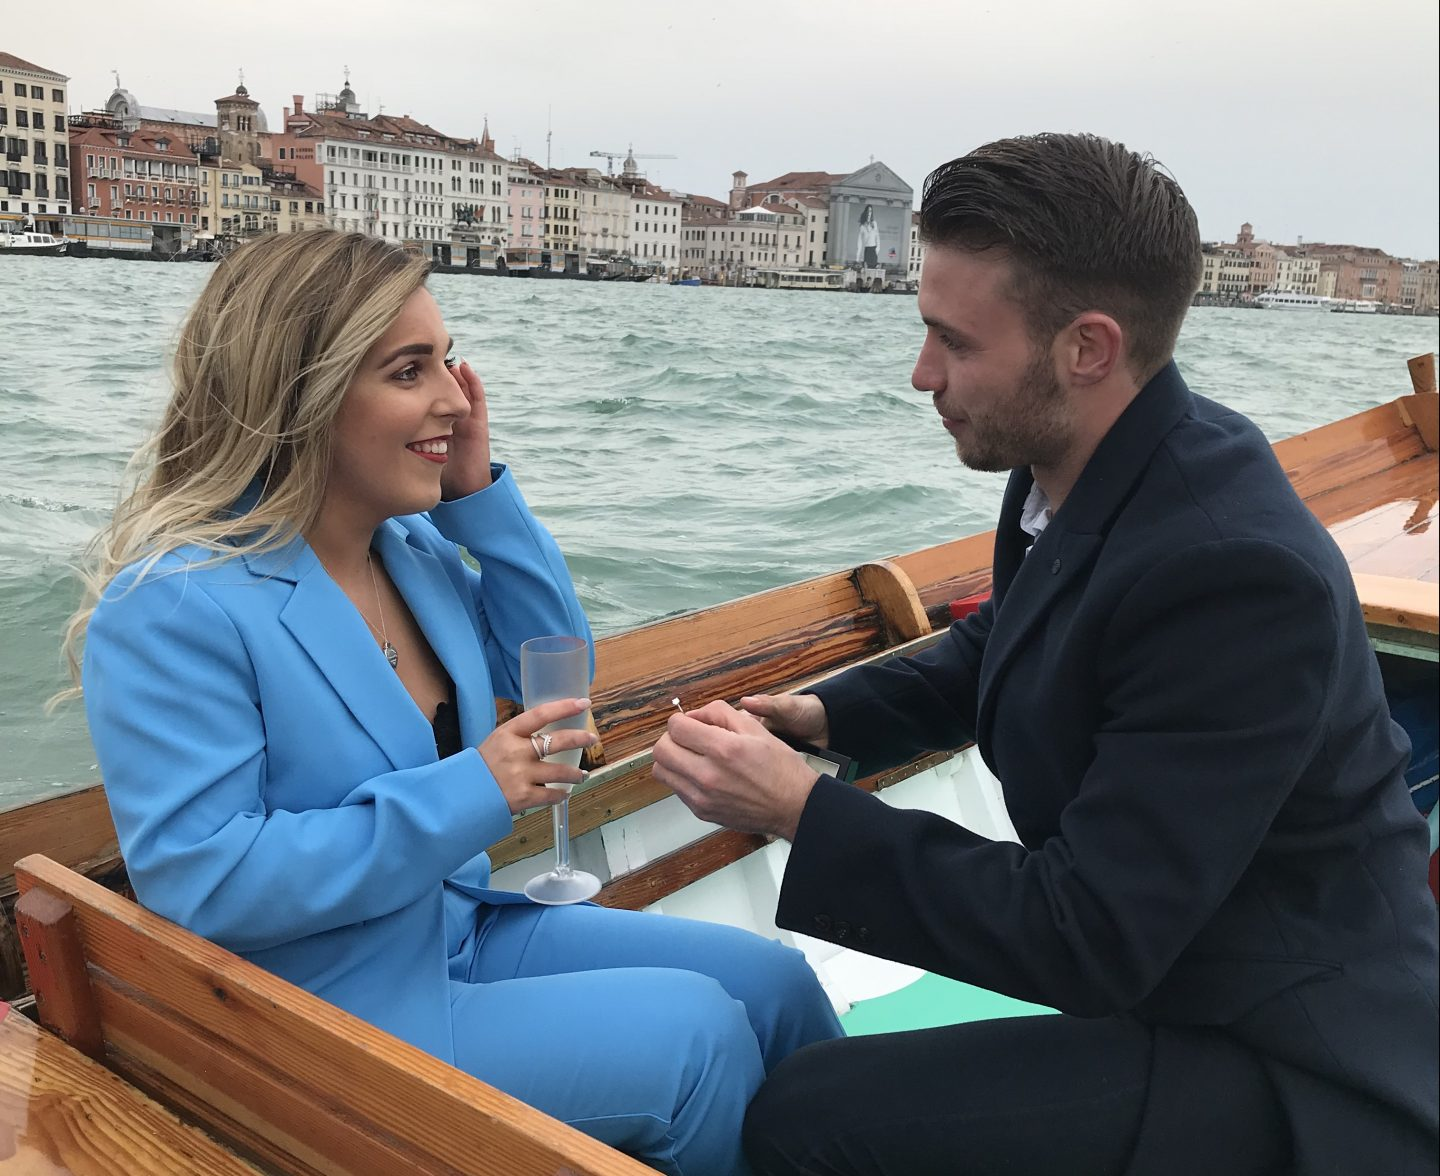 engaged on grand canal venice